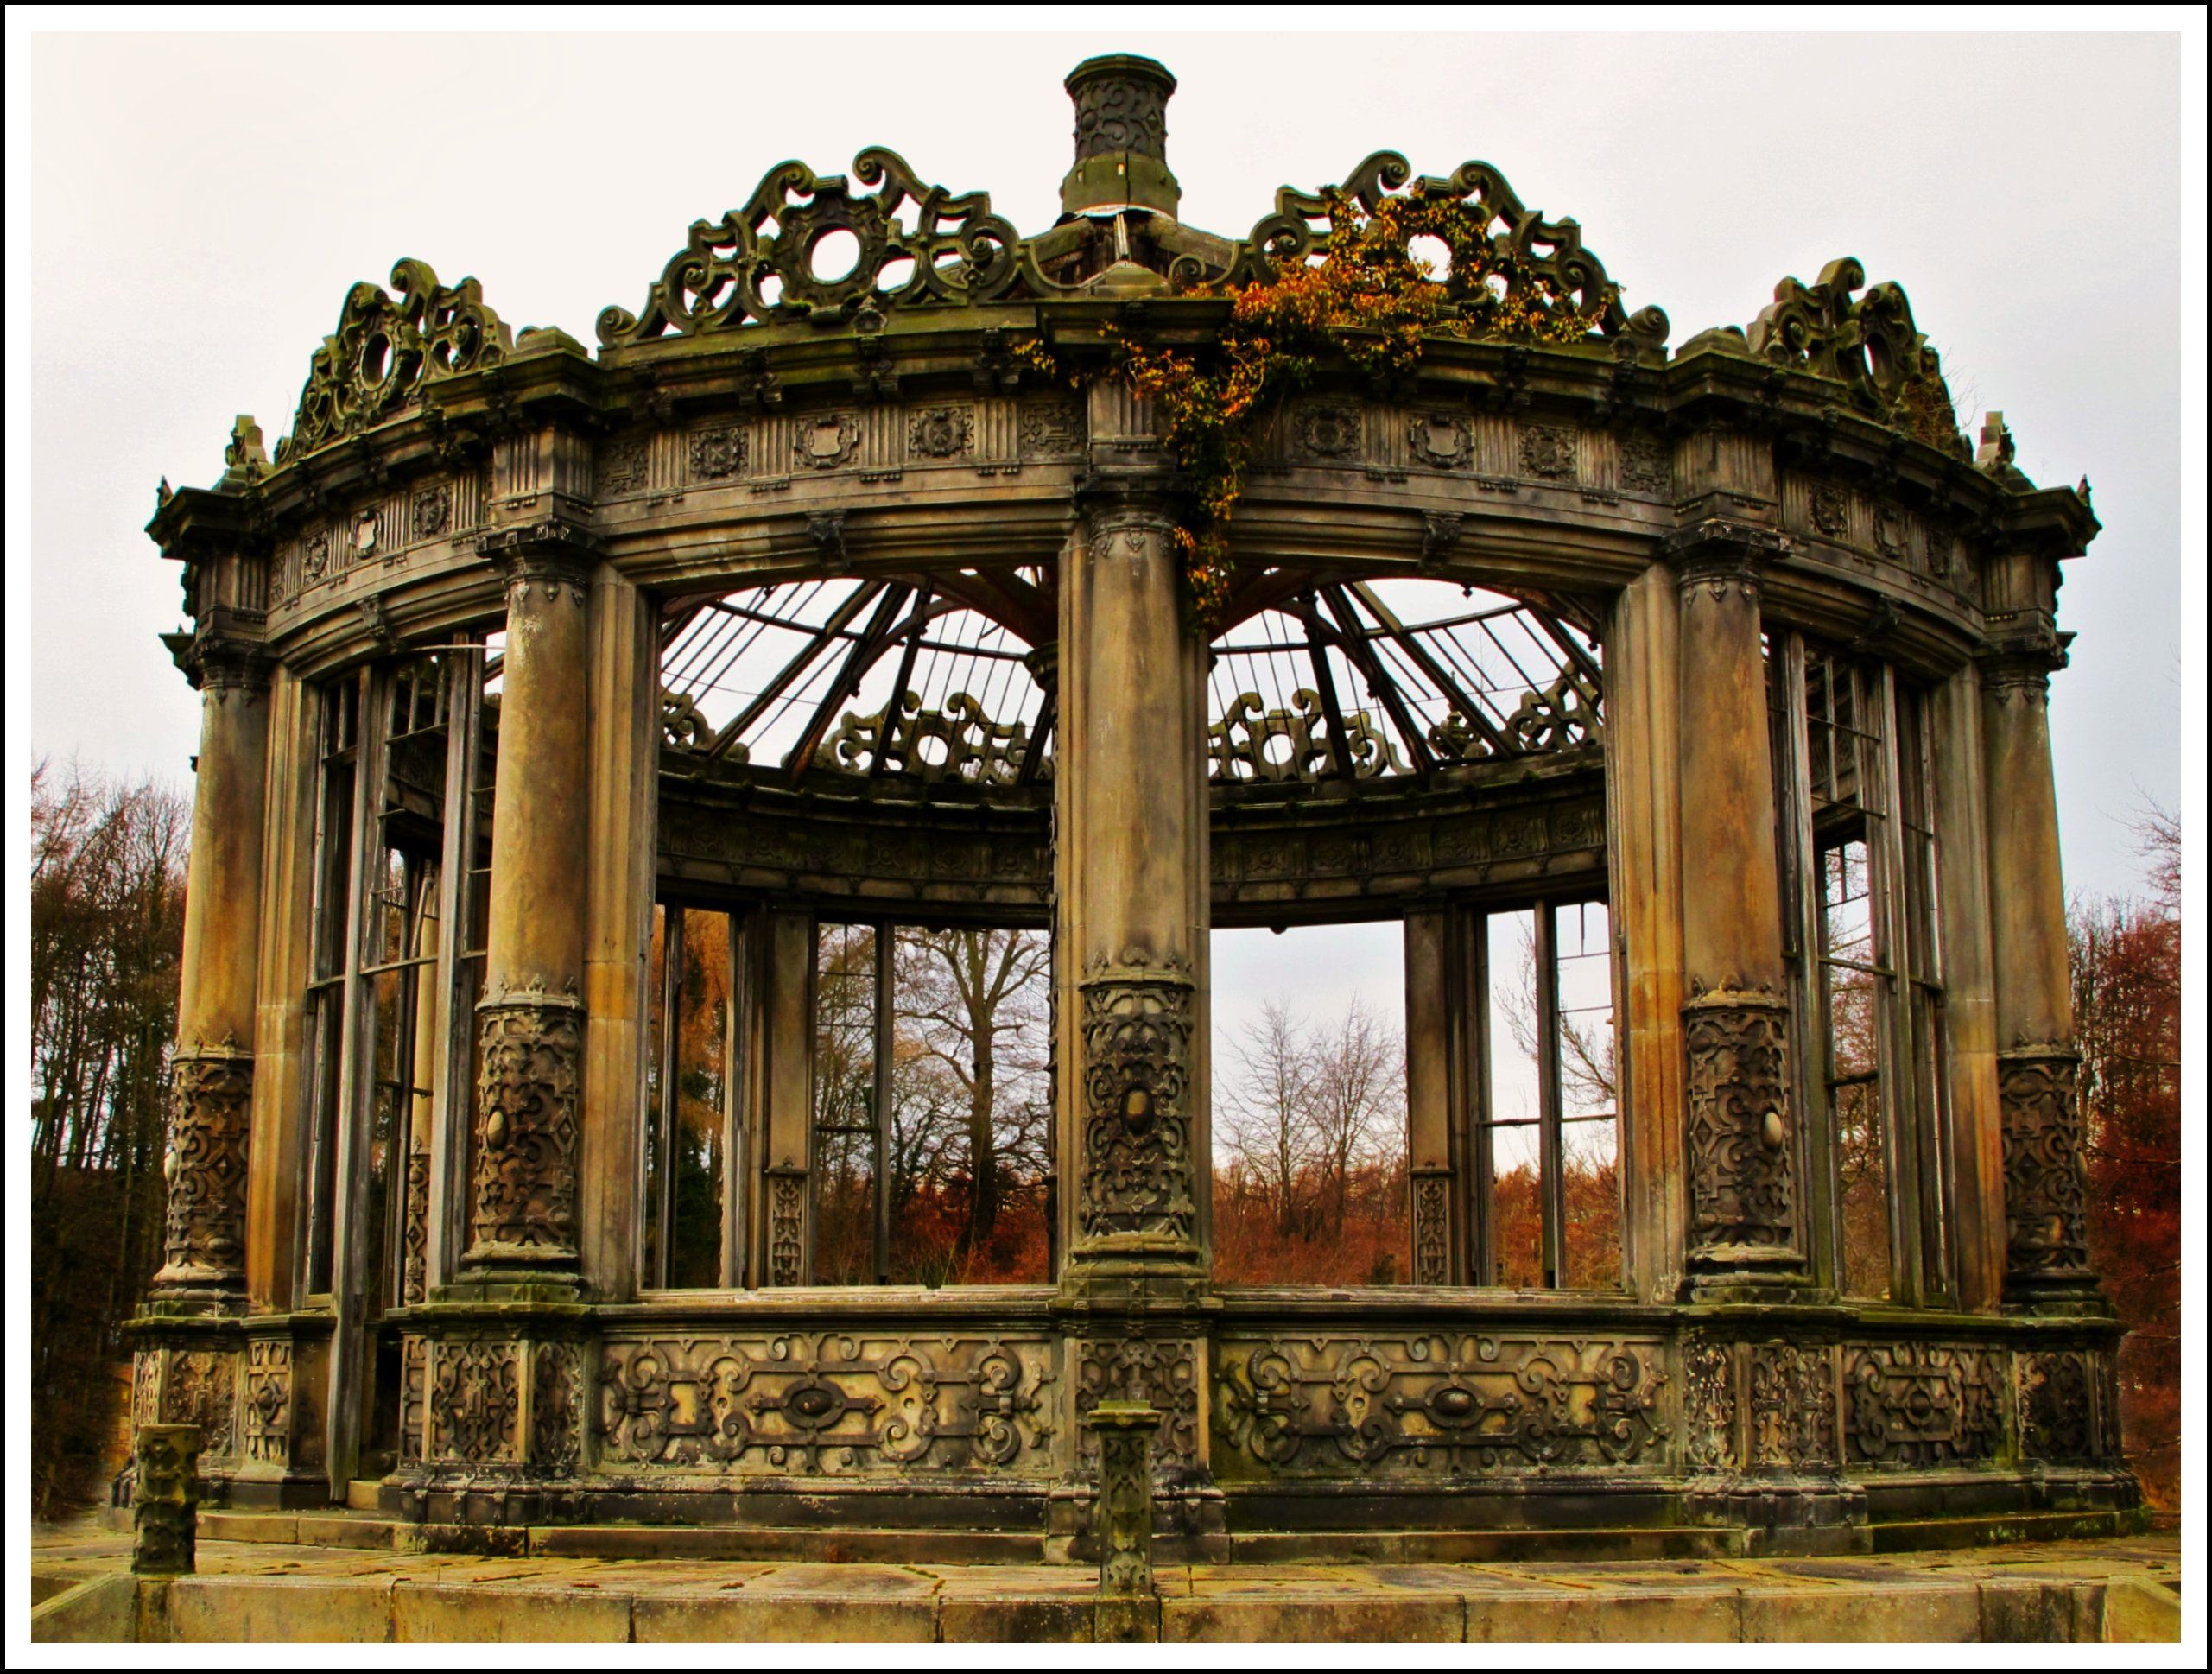 The conservatory that time forgot....the Orangery in Edinburgh, Scotland. [OS] [2561 × 1938].